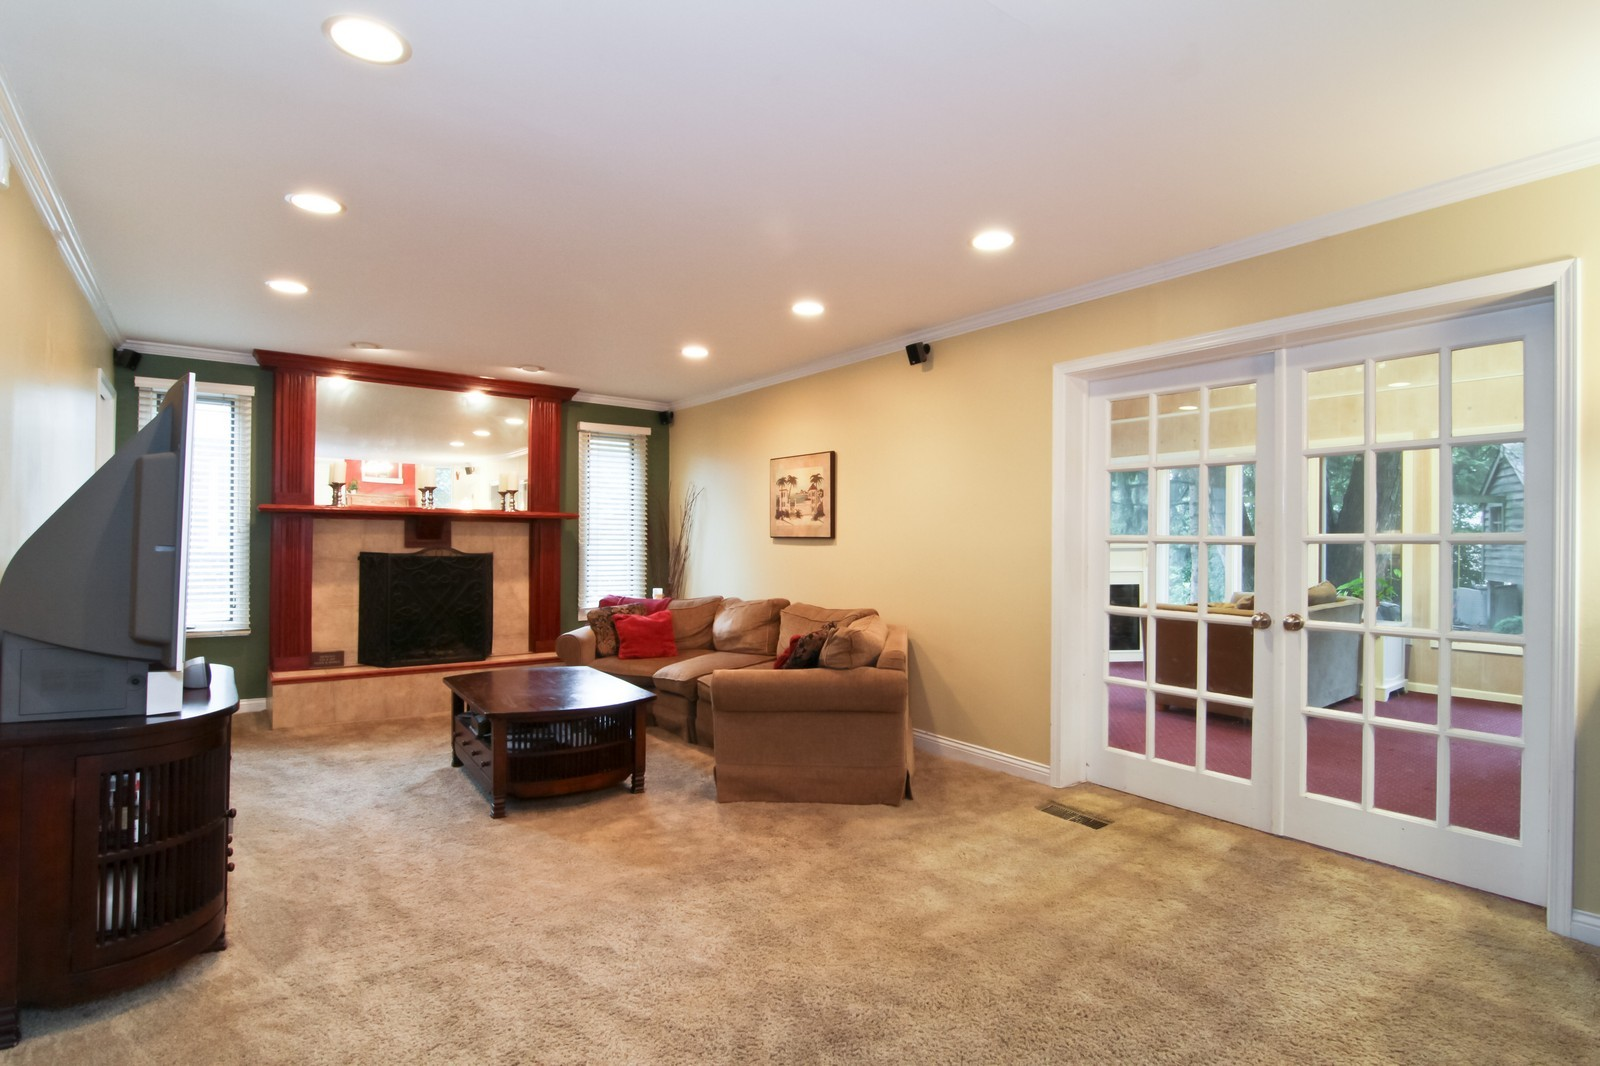 Real Estate Photography - 6224 Blodgett Ave, Downers Grove, IL, 60516 - Family Room Alternate View